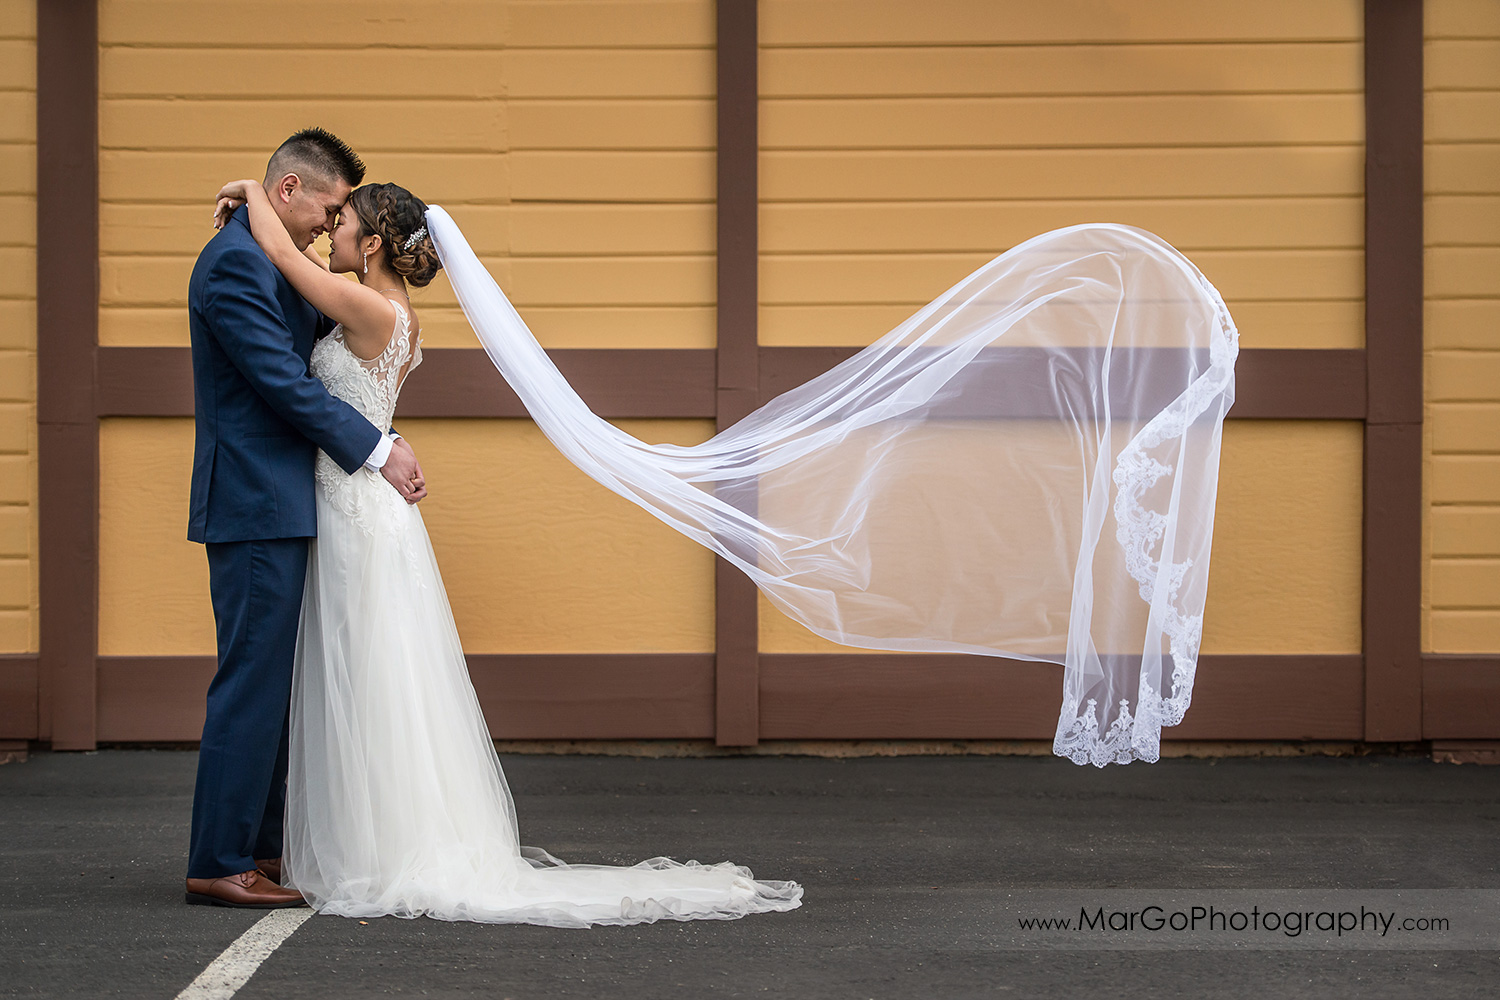 veil shot of bride and groom touching foreheads at train station near Sunol's Casa Bella